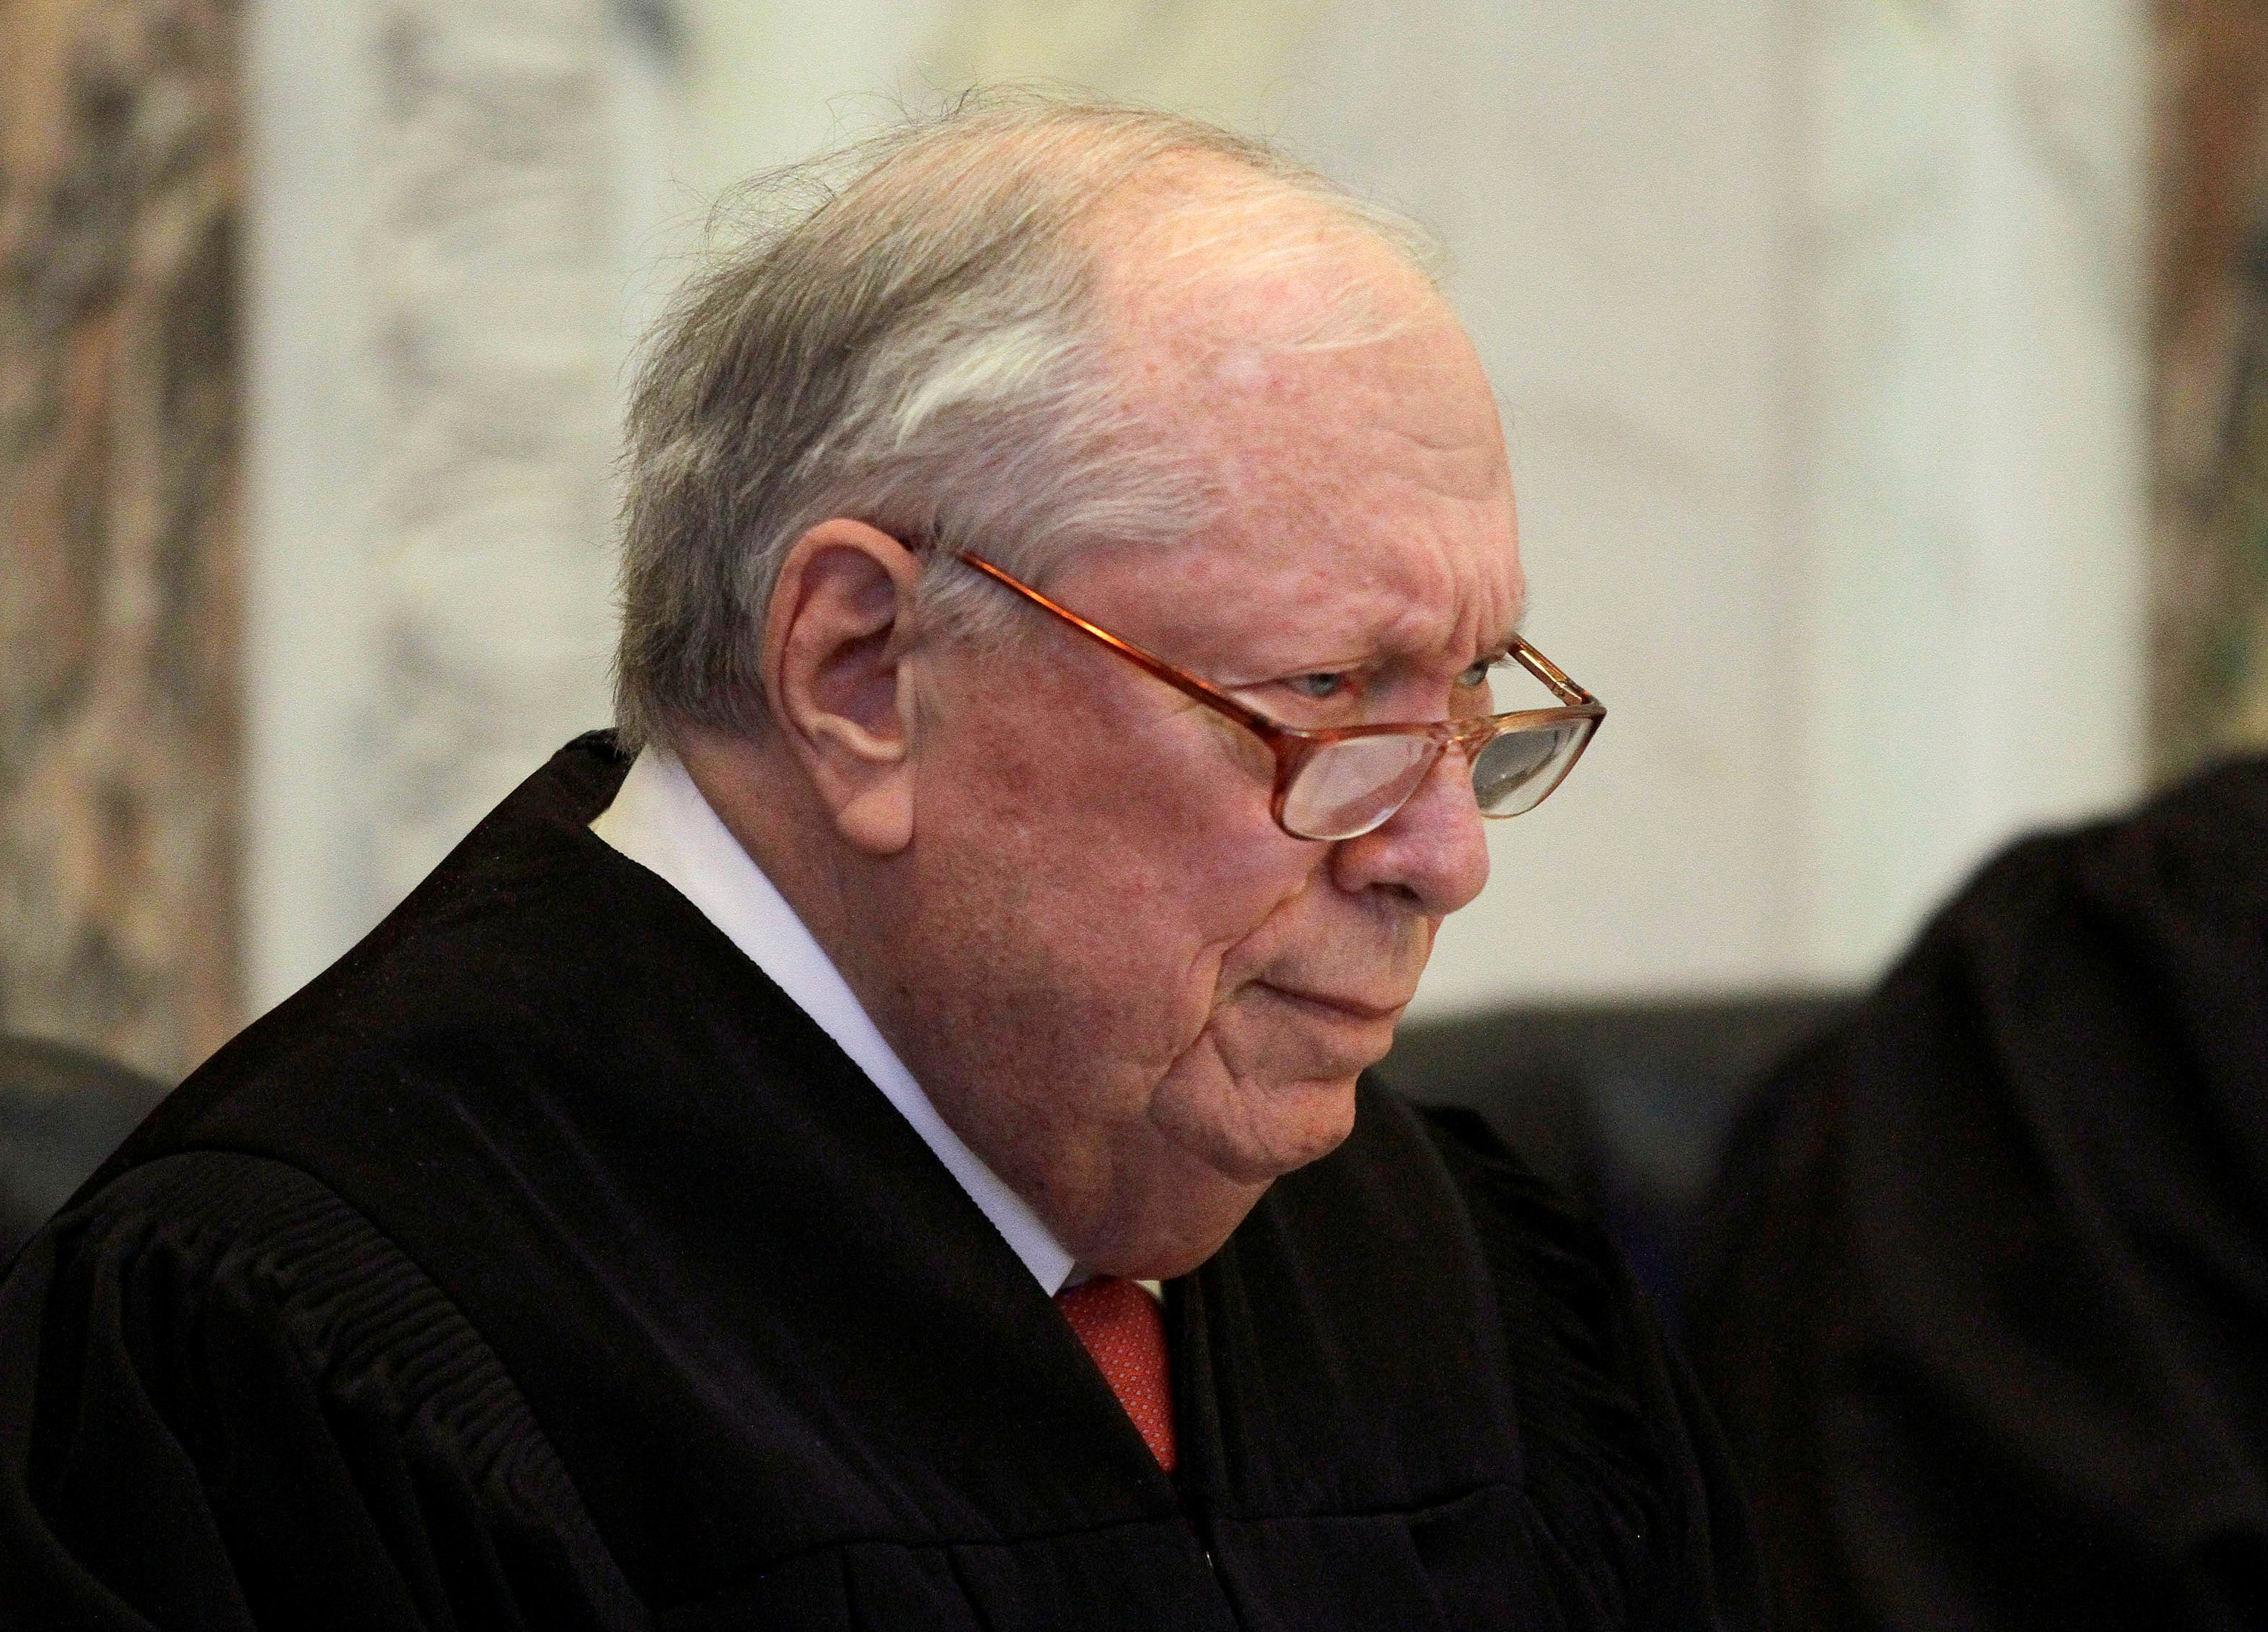 The late Judge Stephen Reinhardt listens to arguments during a hearing on California's Proposition 8 at the 9th Circuit Court of Appeals in San Francisco, Dec. 6, 2010